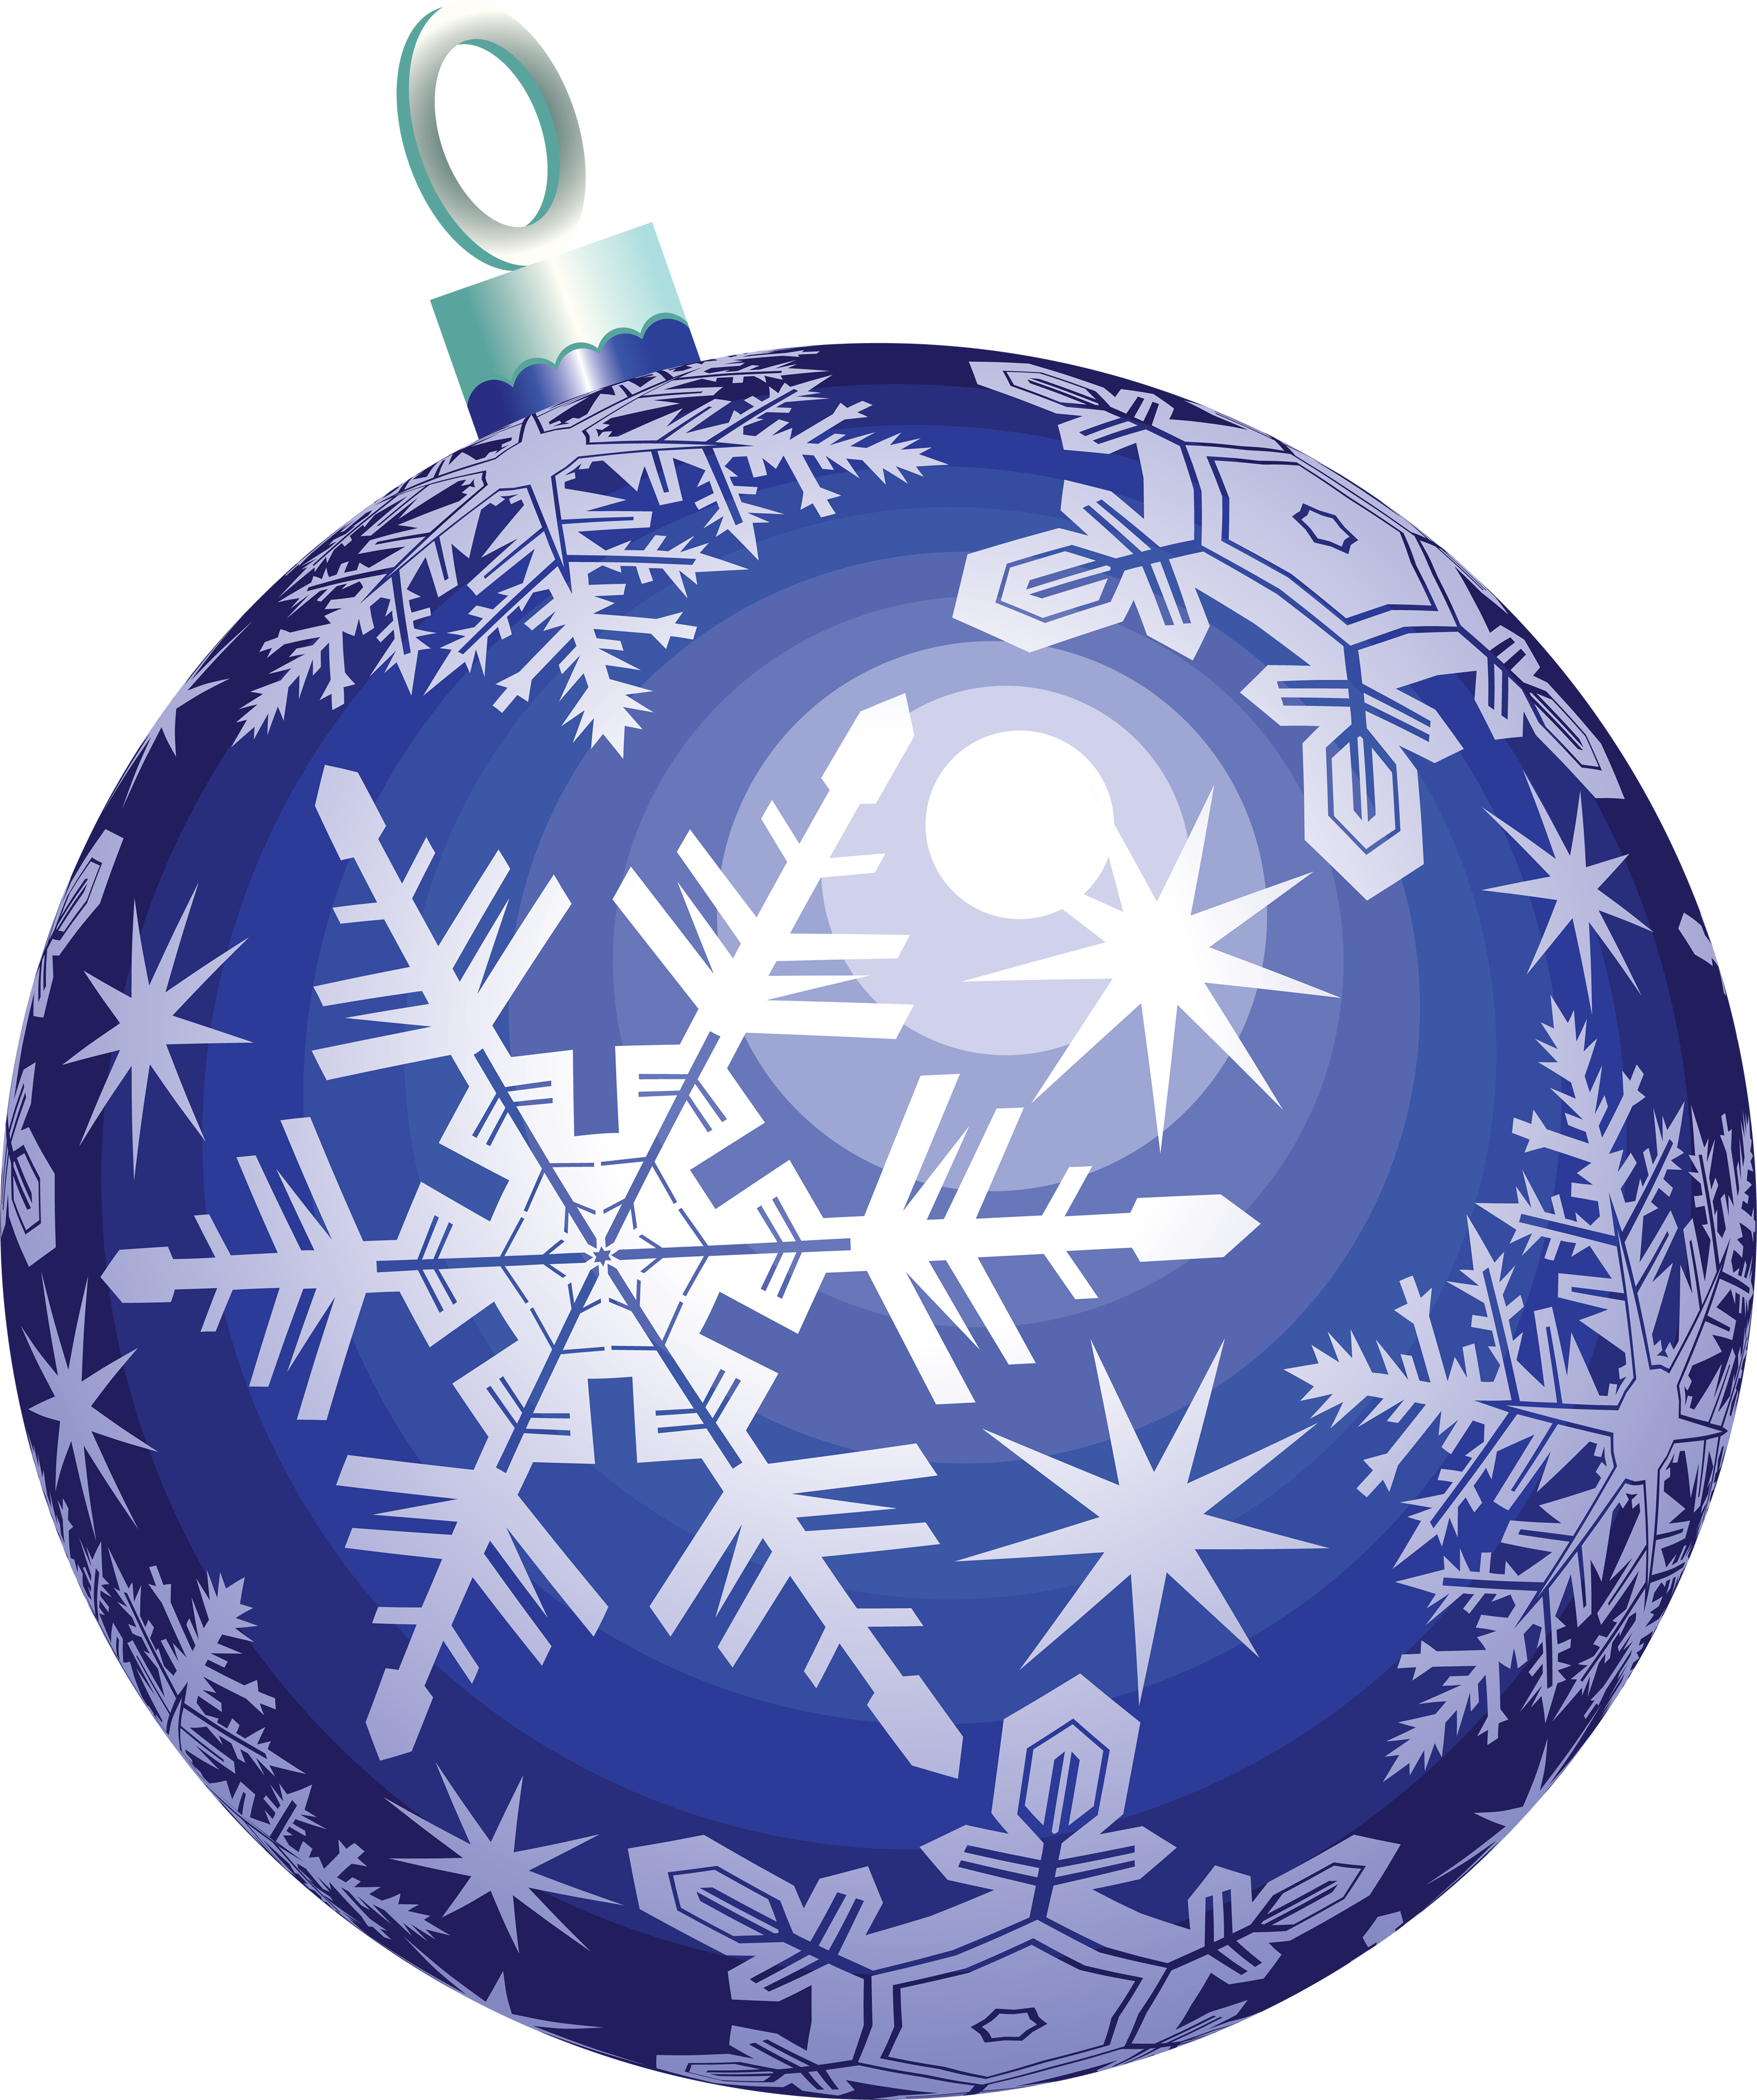 Download this high resolution Christmas PNG in High Resolution